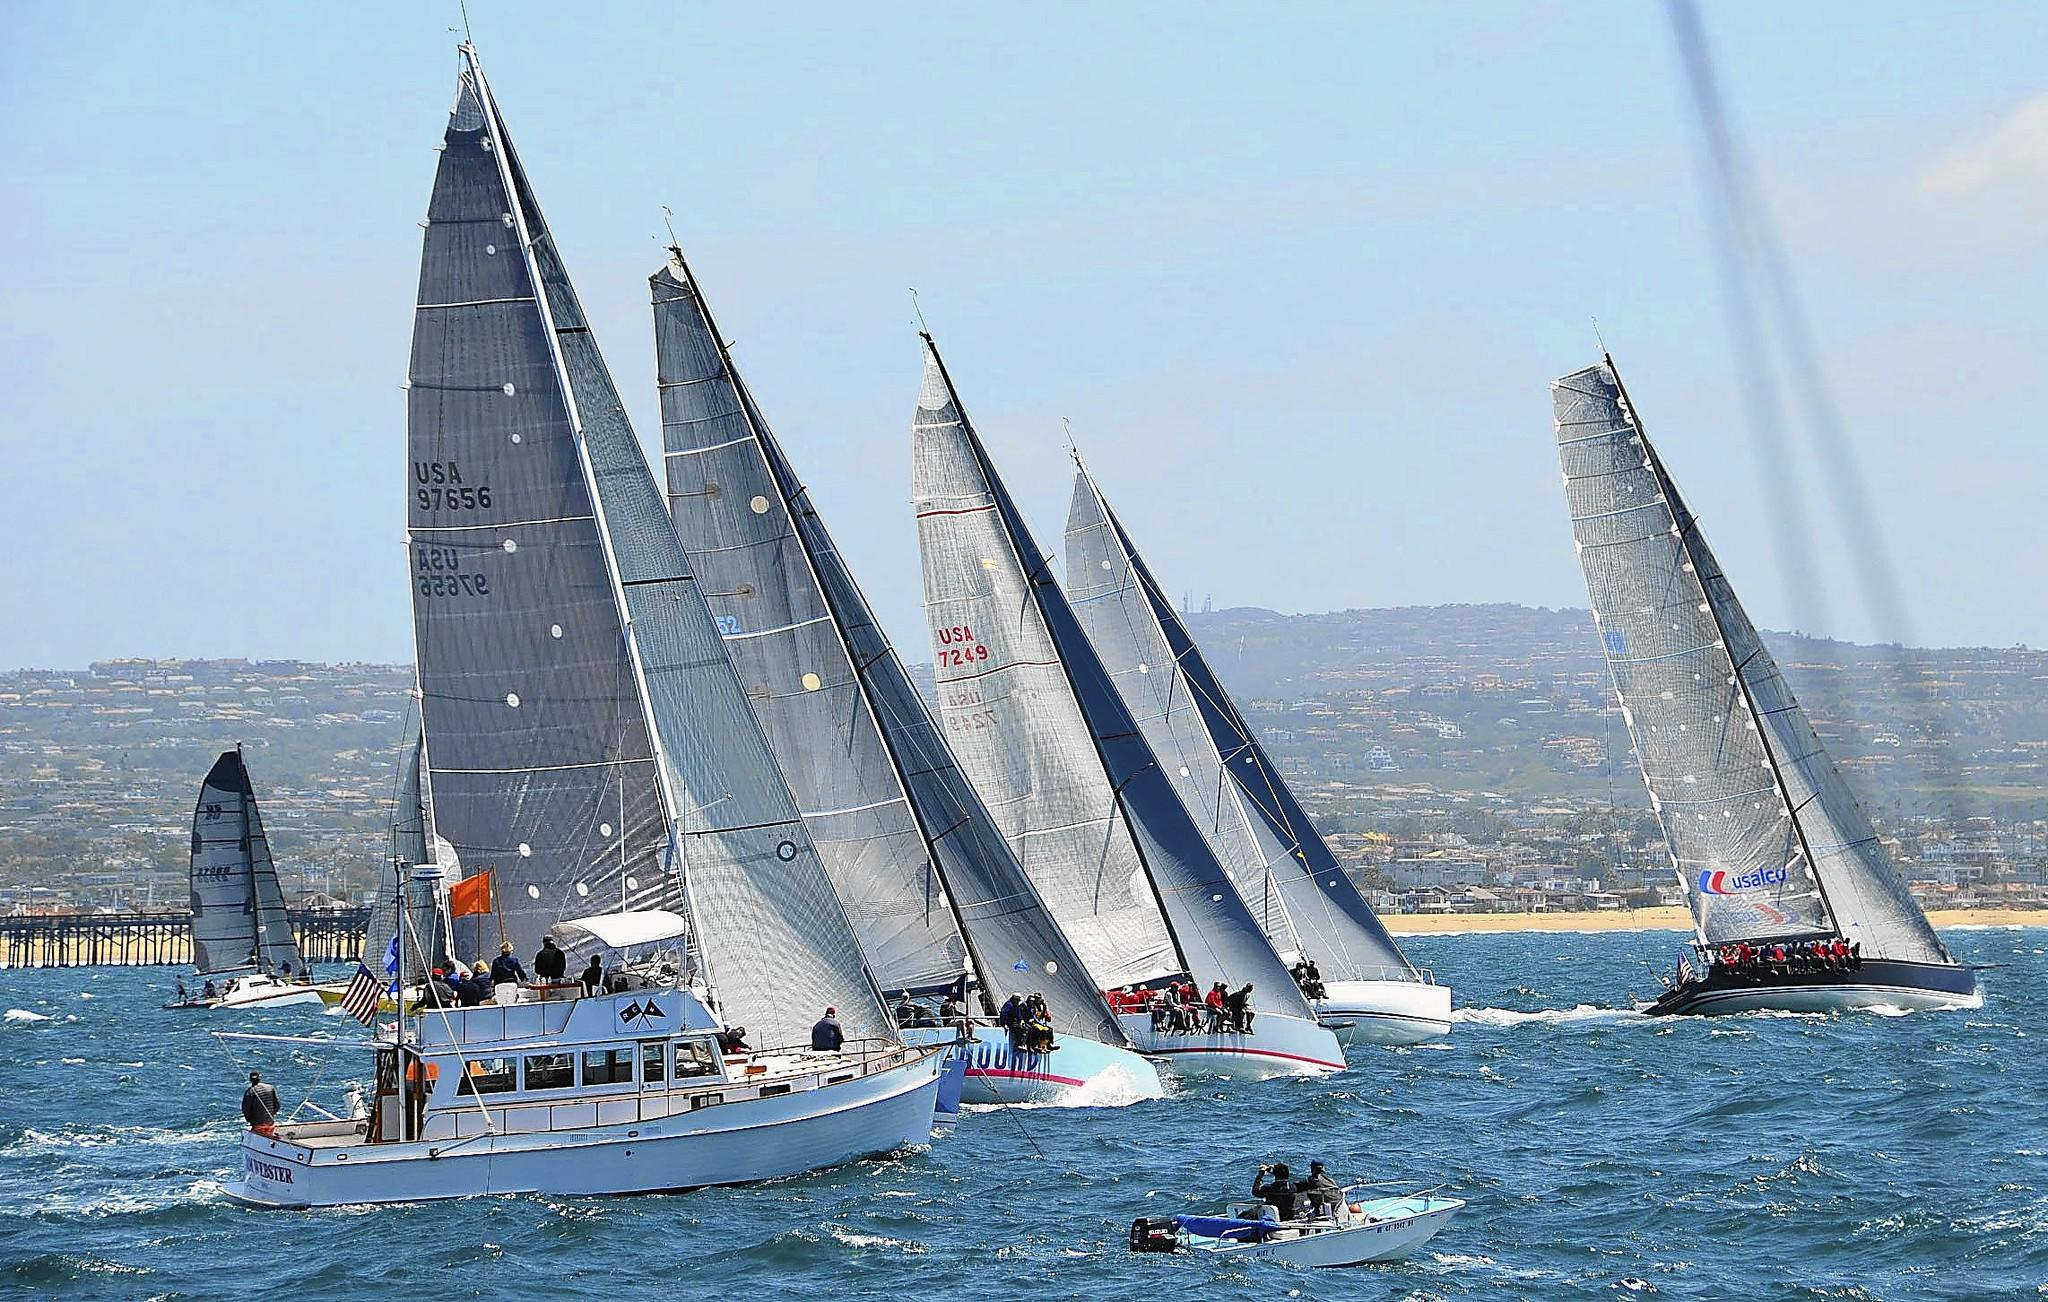 Racers and their crews take off in an even line at the start of the maxi class race during the 2014 Newport to Ensenada International Yacht Race on Friday.